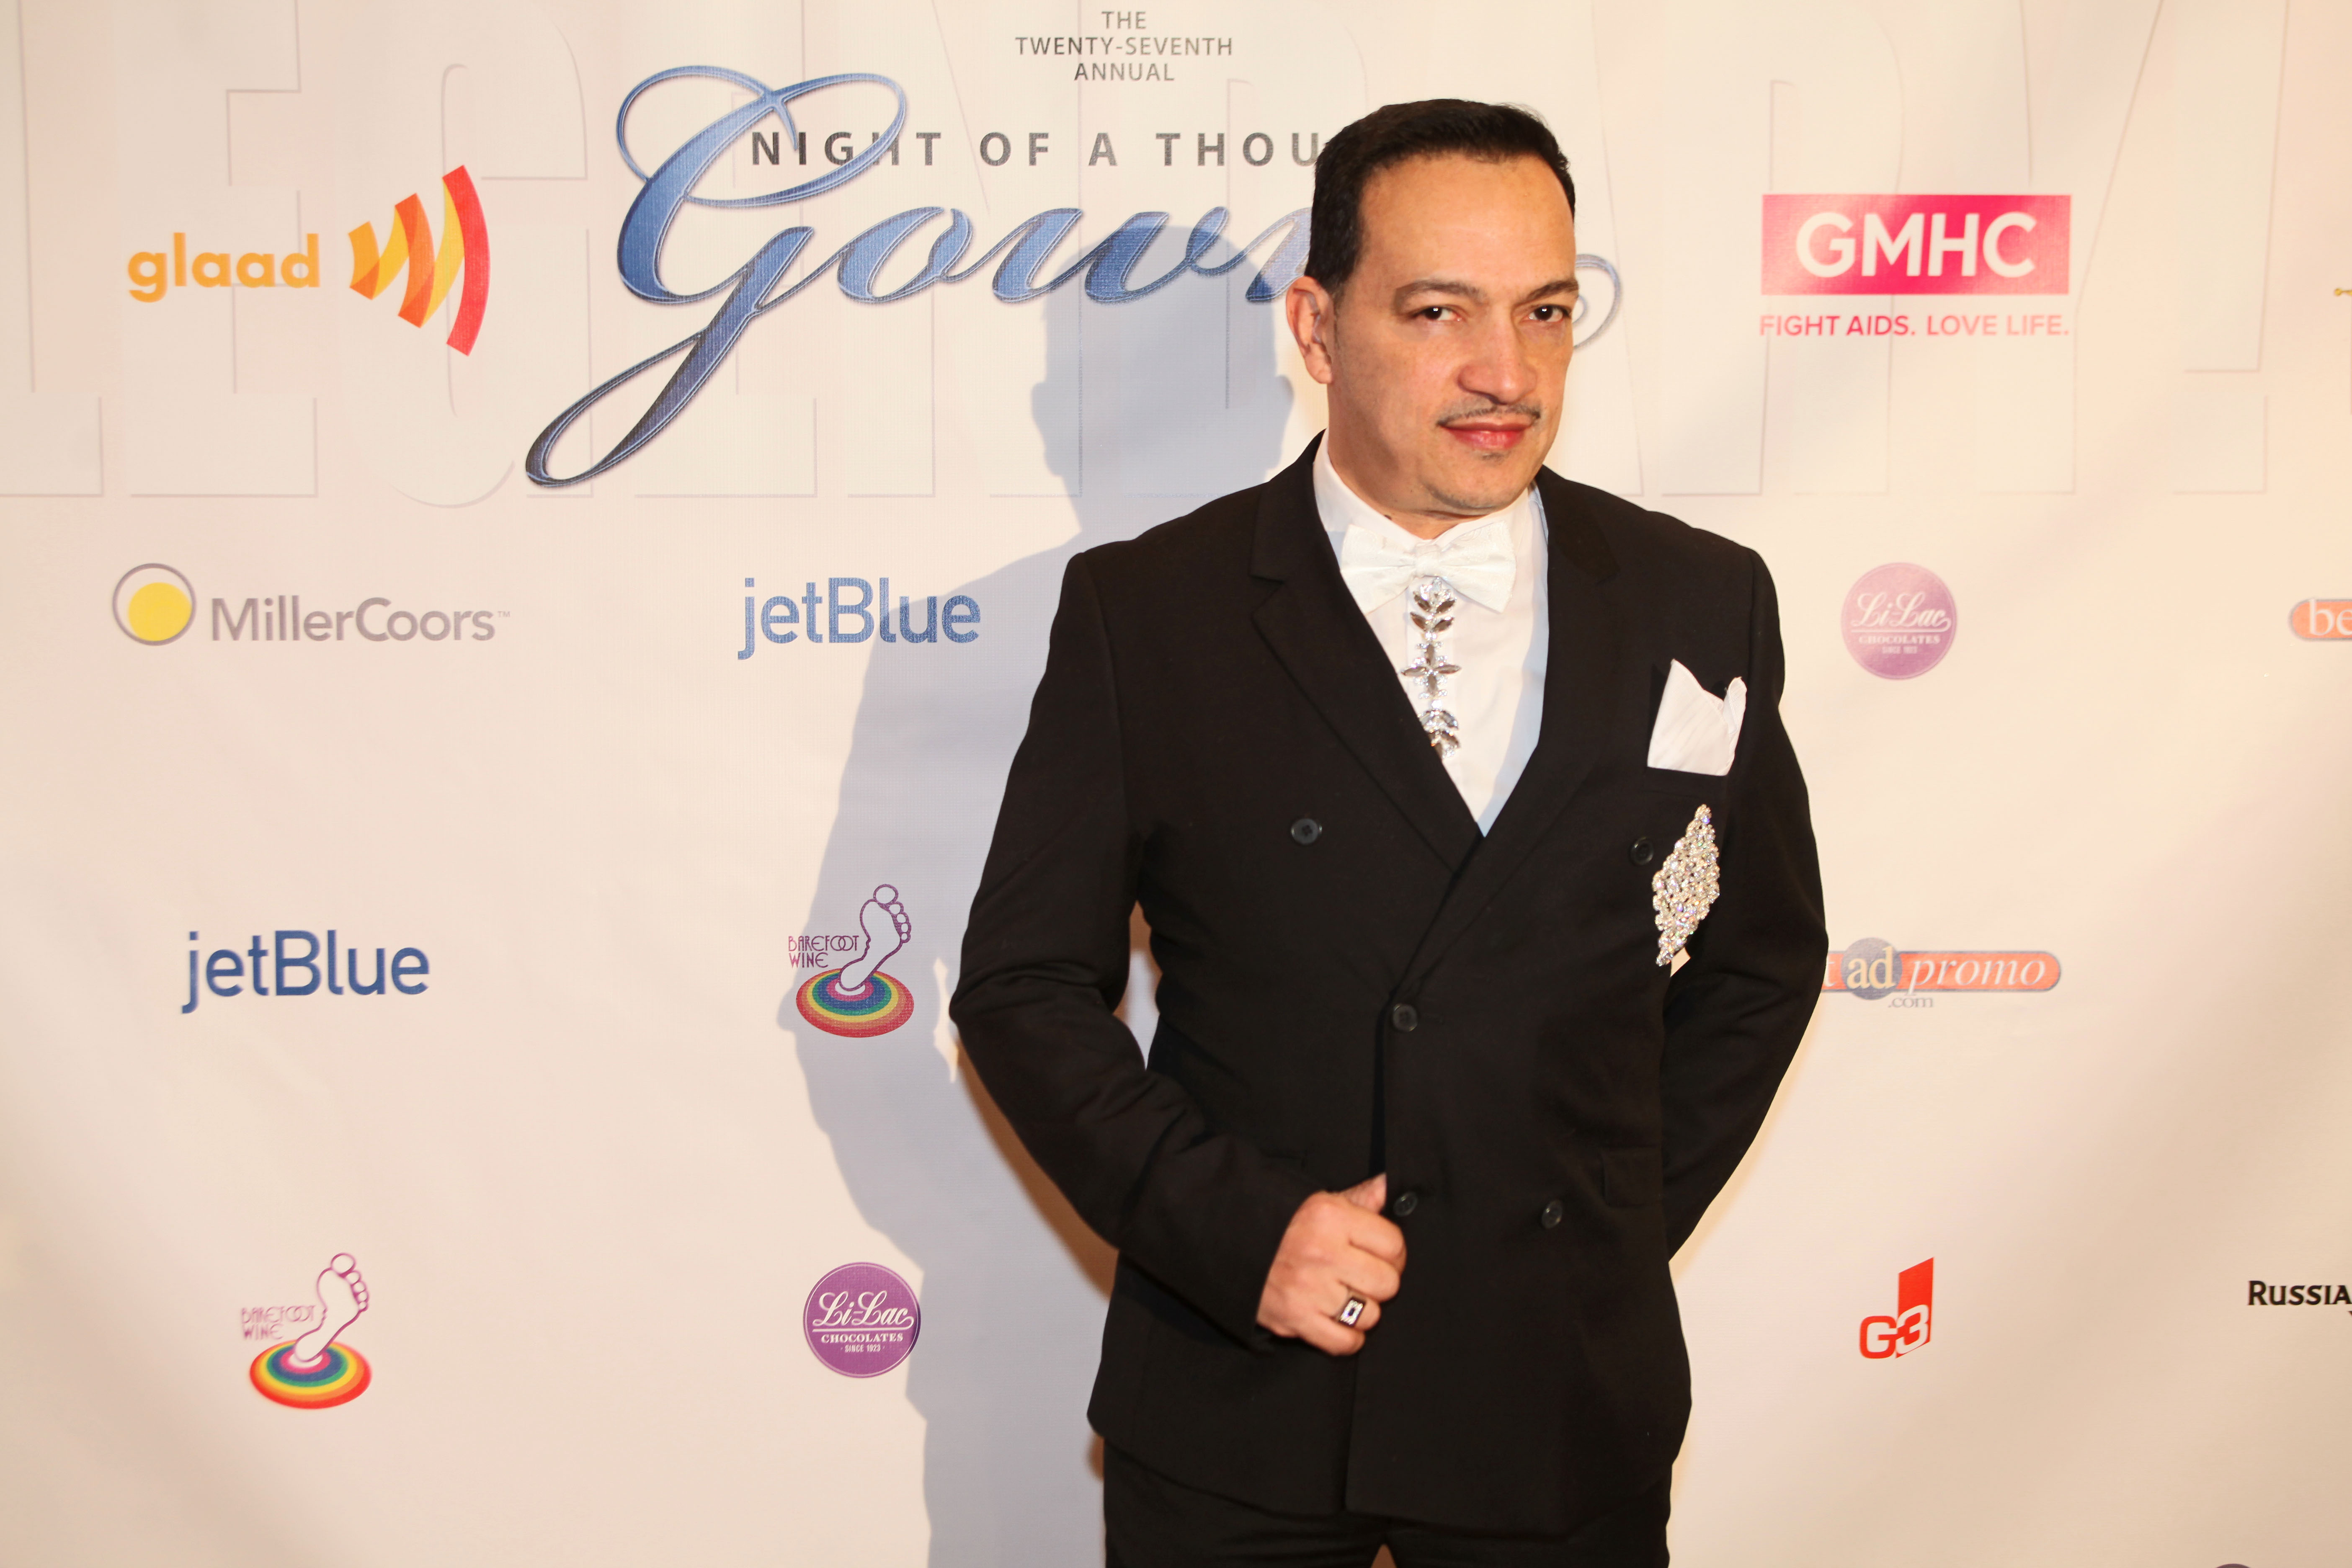 Anthony Rubio attends The 27th Annual Night of a Thousand Gowns Gala ...